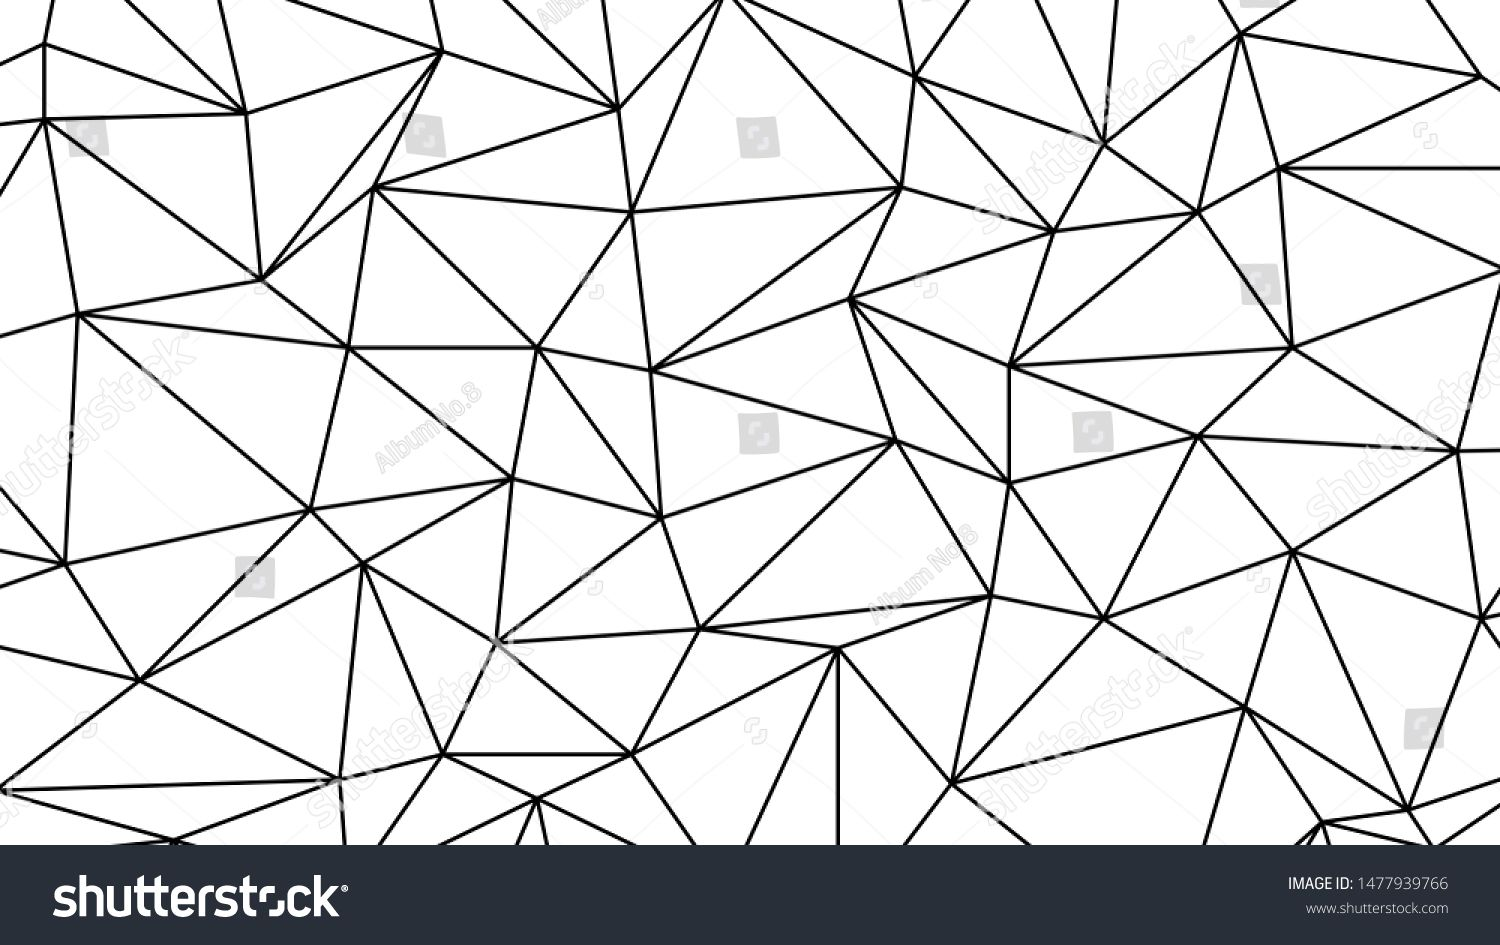 Black And White Geometric Abstract Wallpaper Background Sponsored